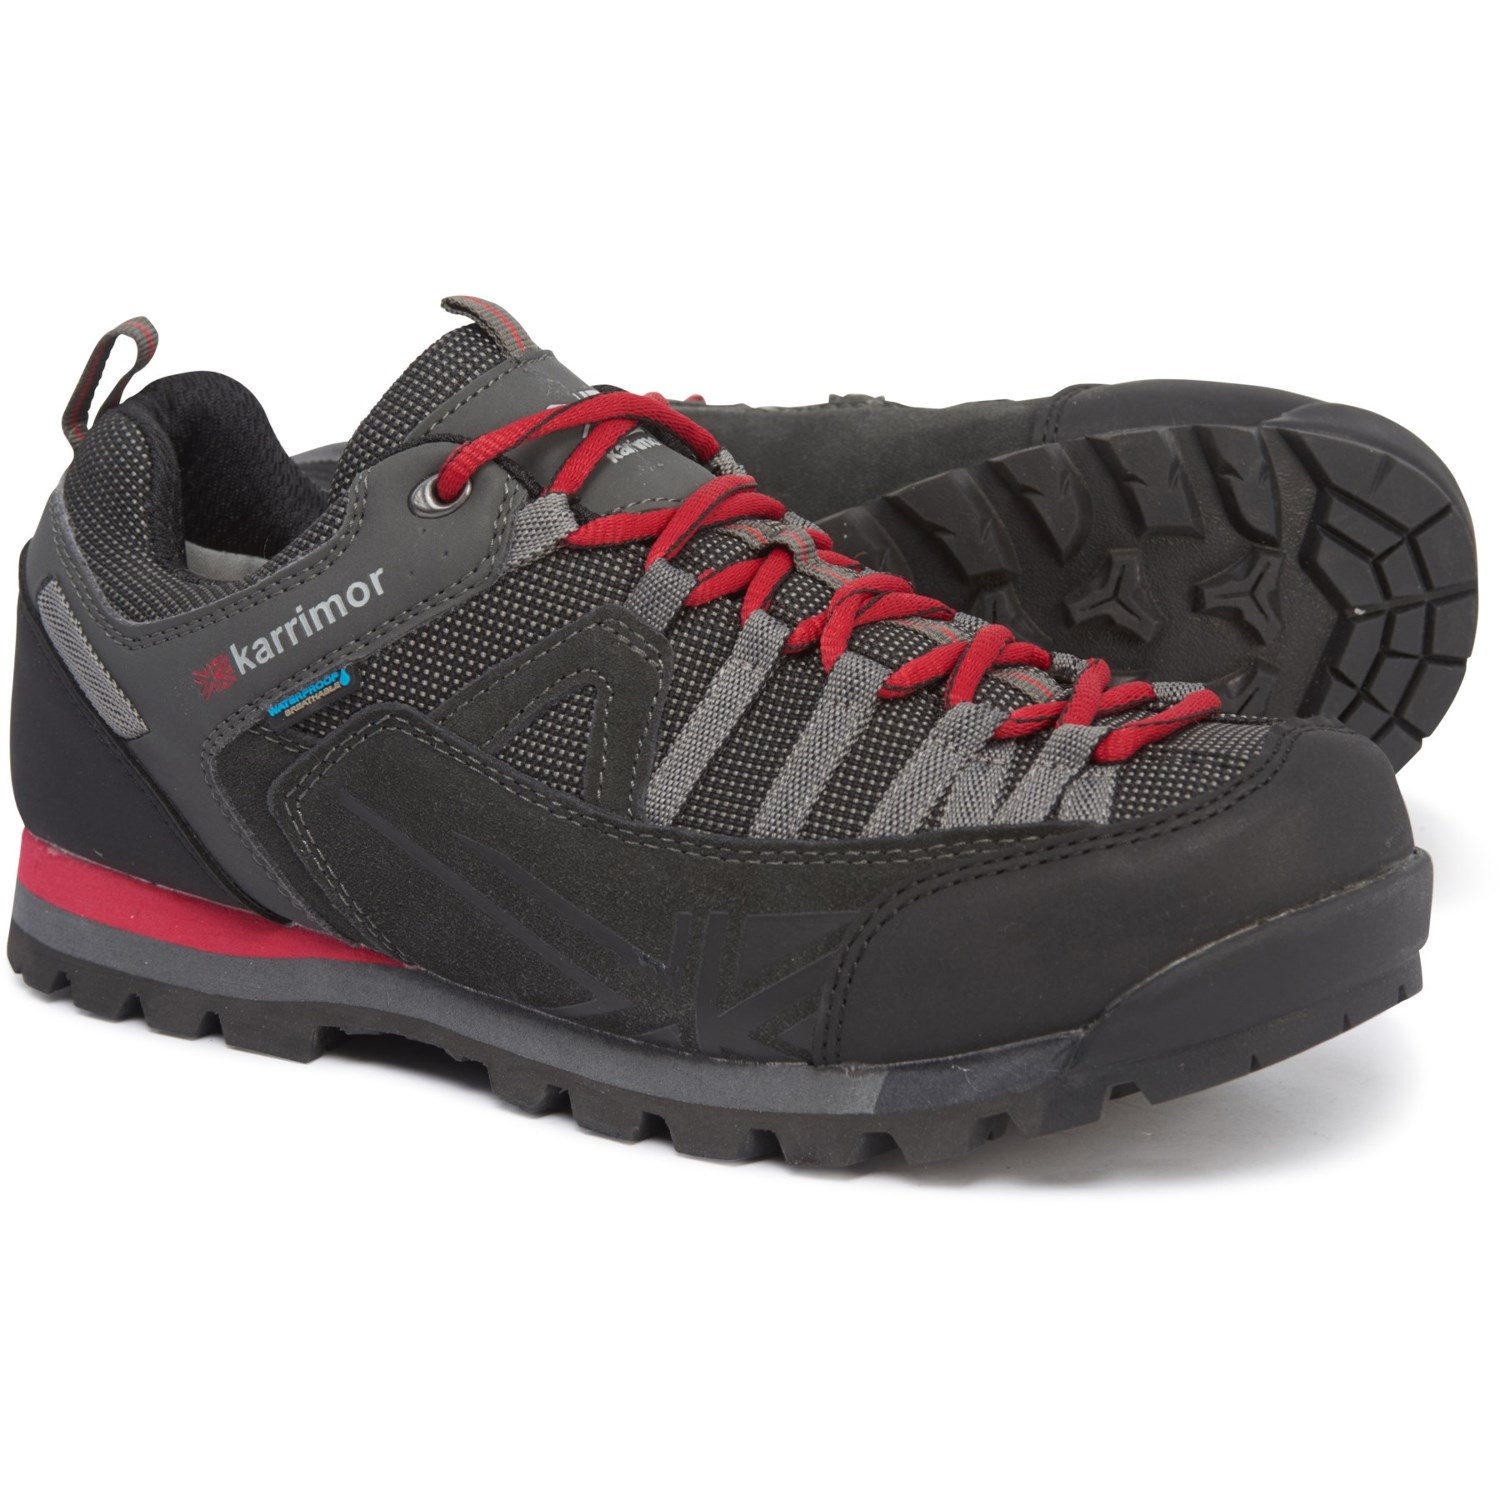 save off 46d27 c9954 Karrimor Spike Low 3 Weathertite Hiking Shoes - Waterproof, Suede (For Men)